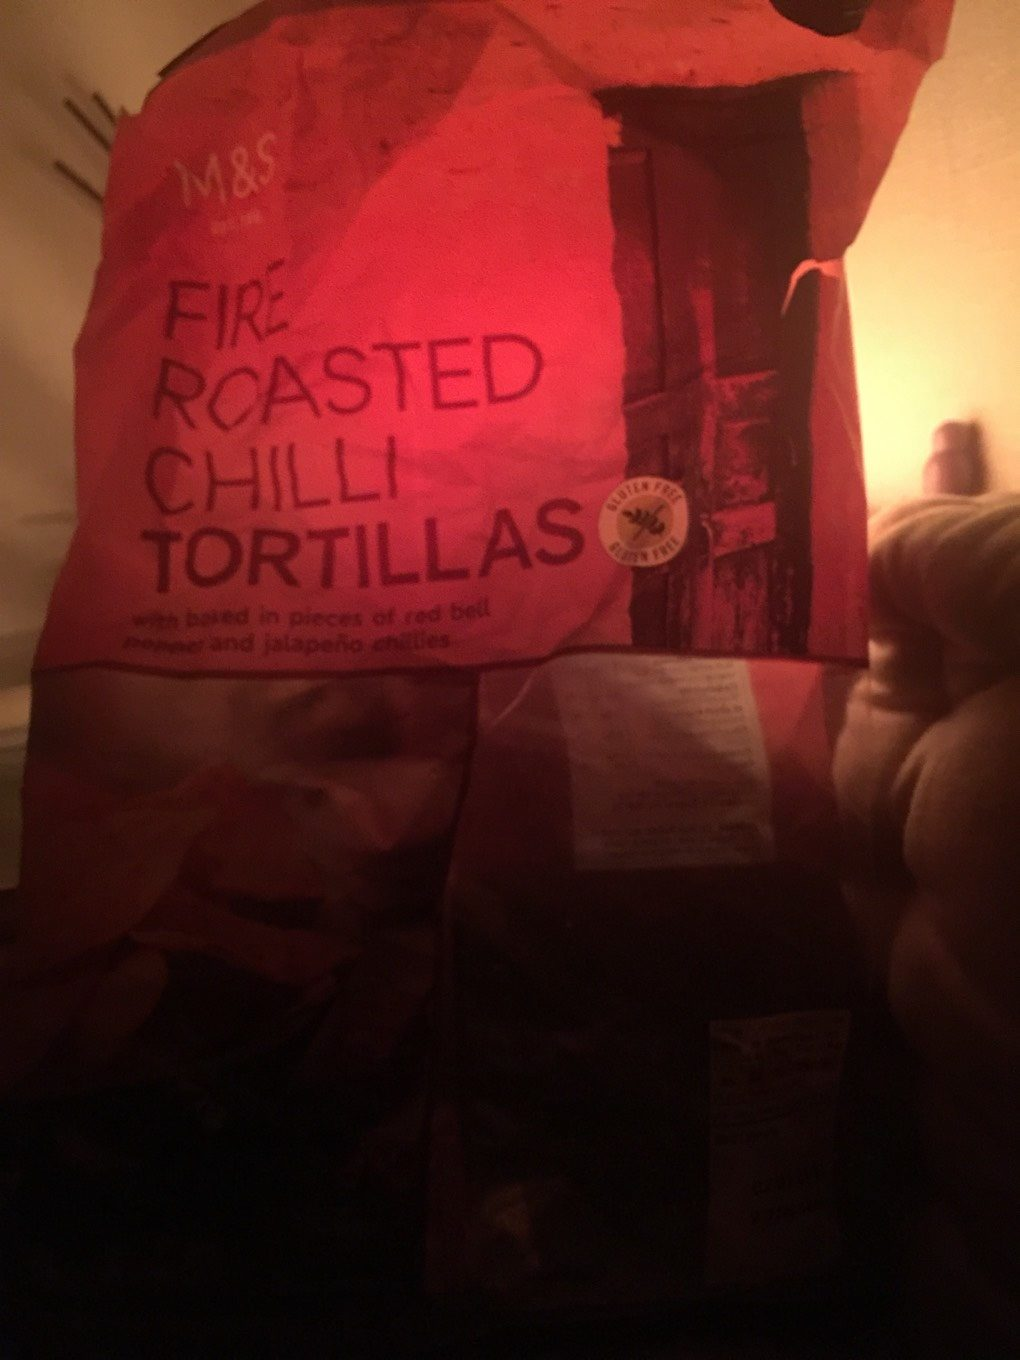 Fire roasted chili tortilla - Product